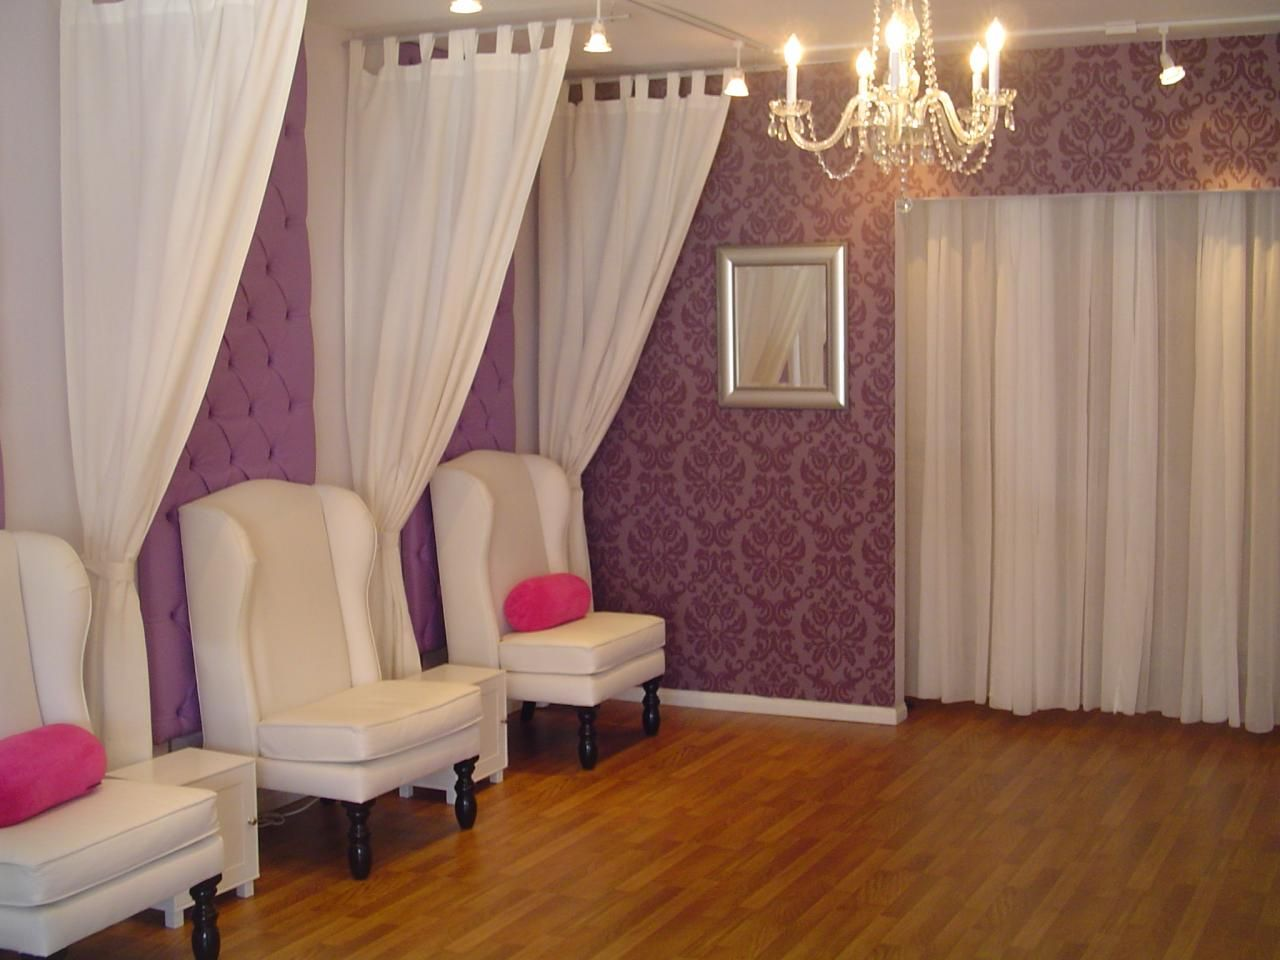 Pedicure Chair Ideas h2o max lounge pedicure chair I Like How The Curtains Are Hung Possibly To Separate Areas Wo Putting